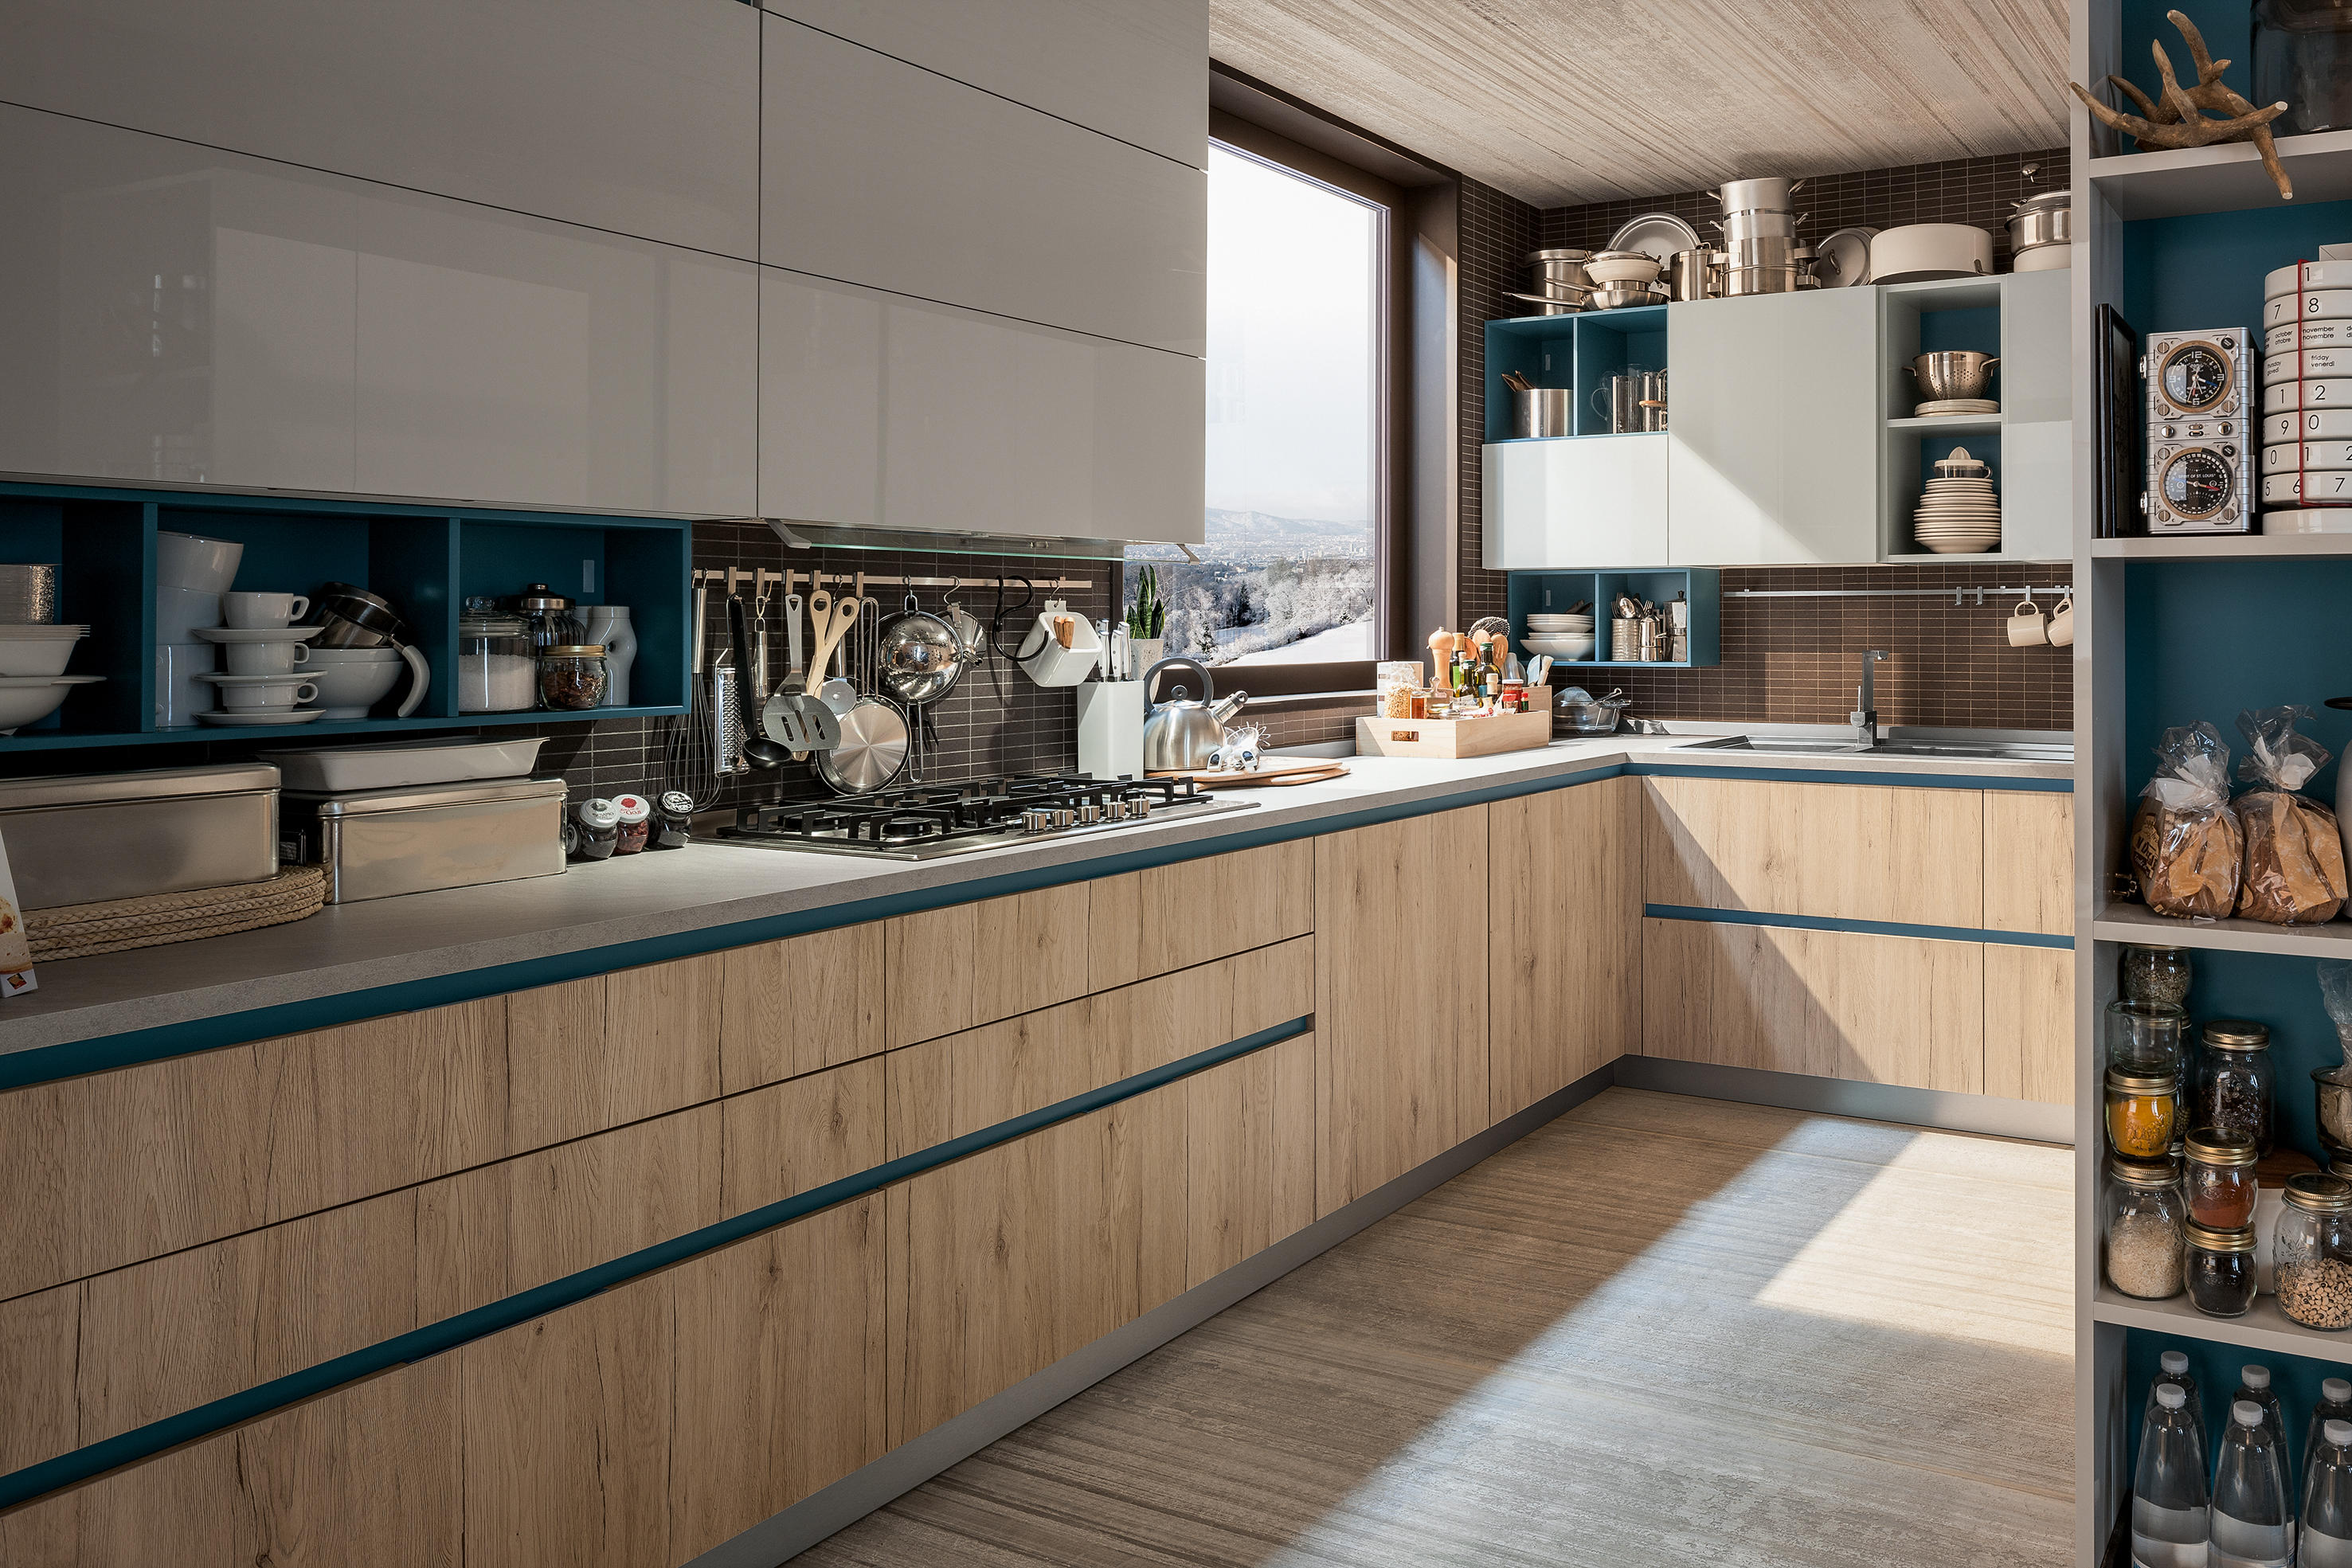 Veneta Cucine Start Time Go.Start Time Go High Quality Designer Products Architonic